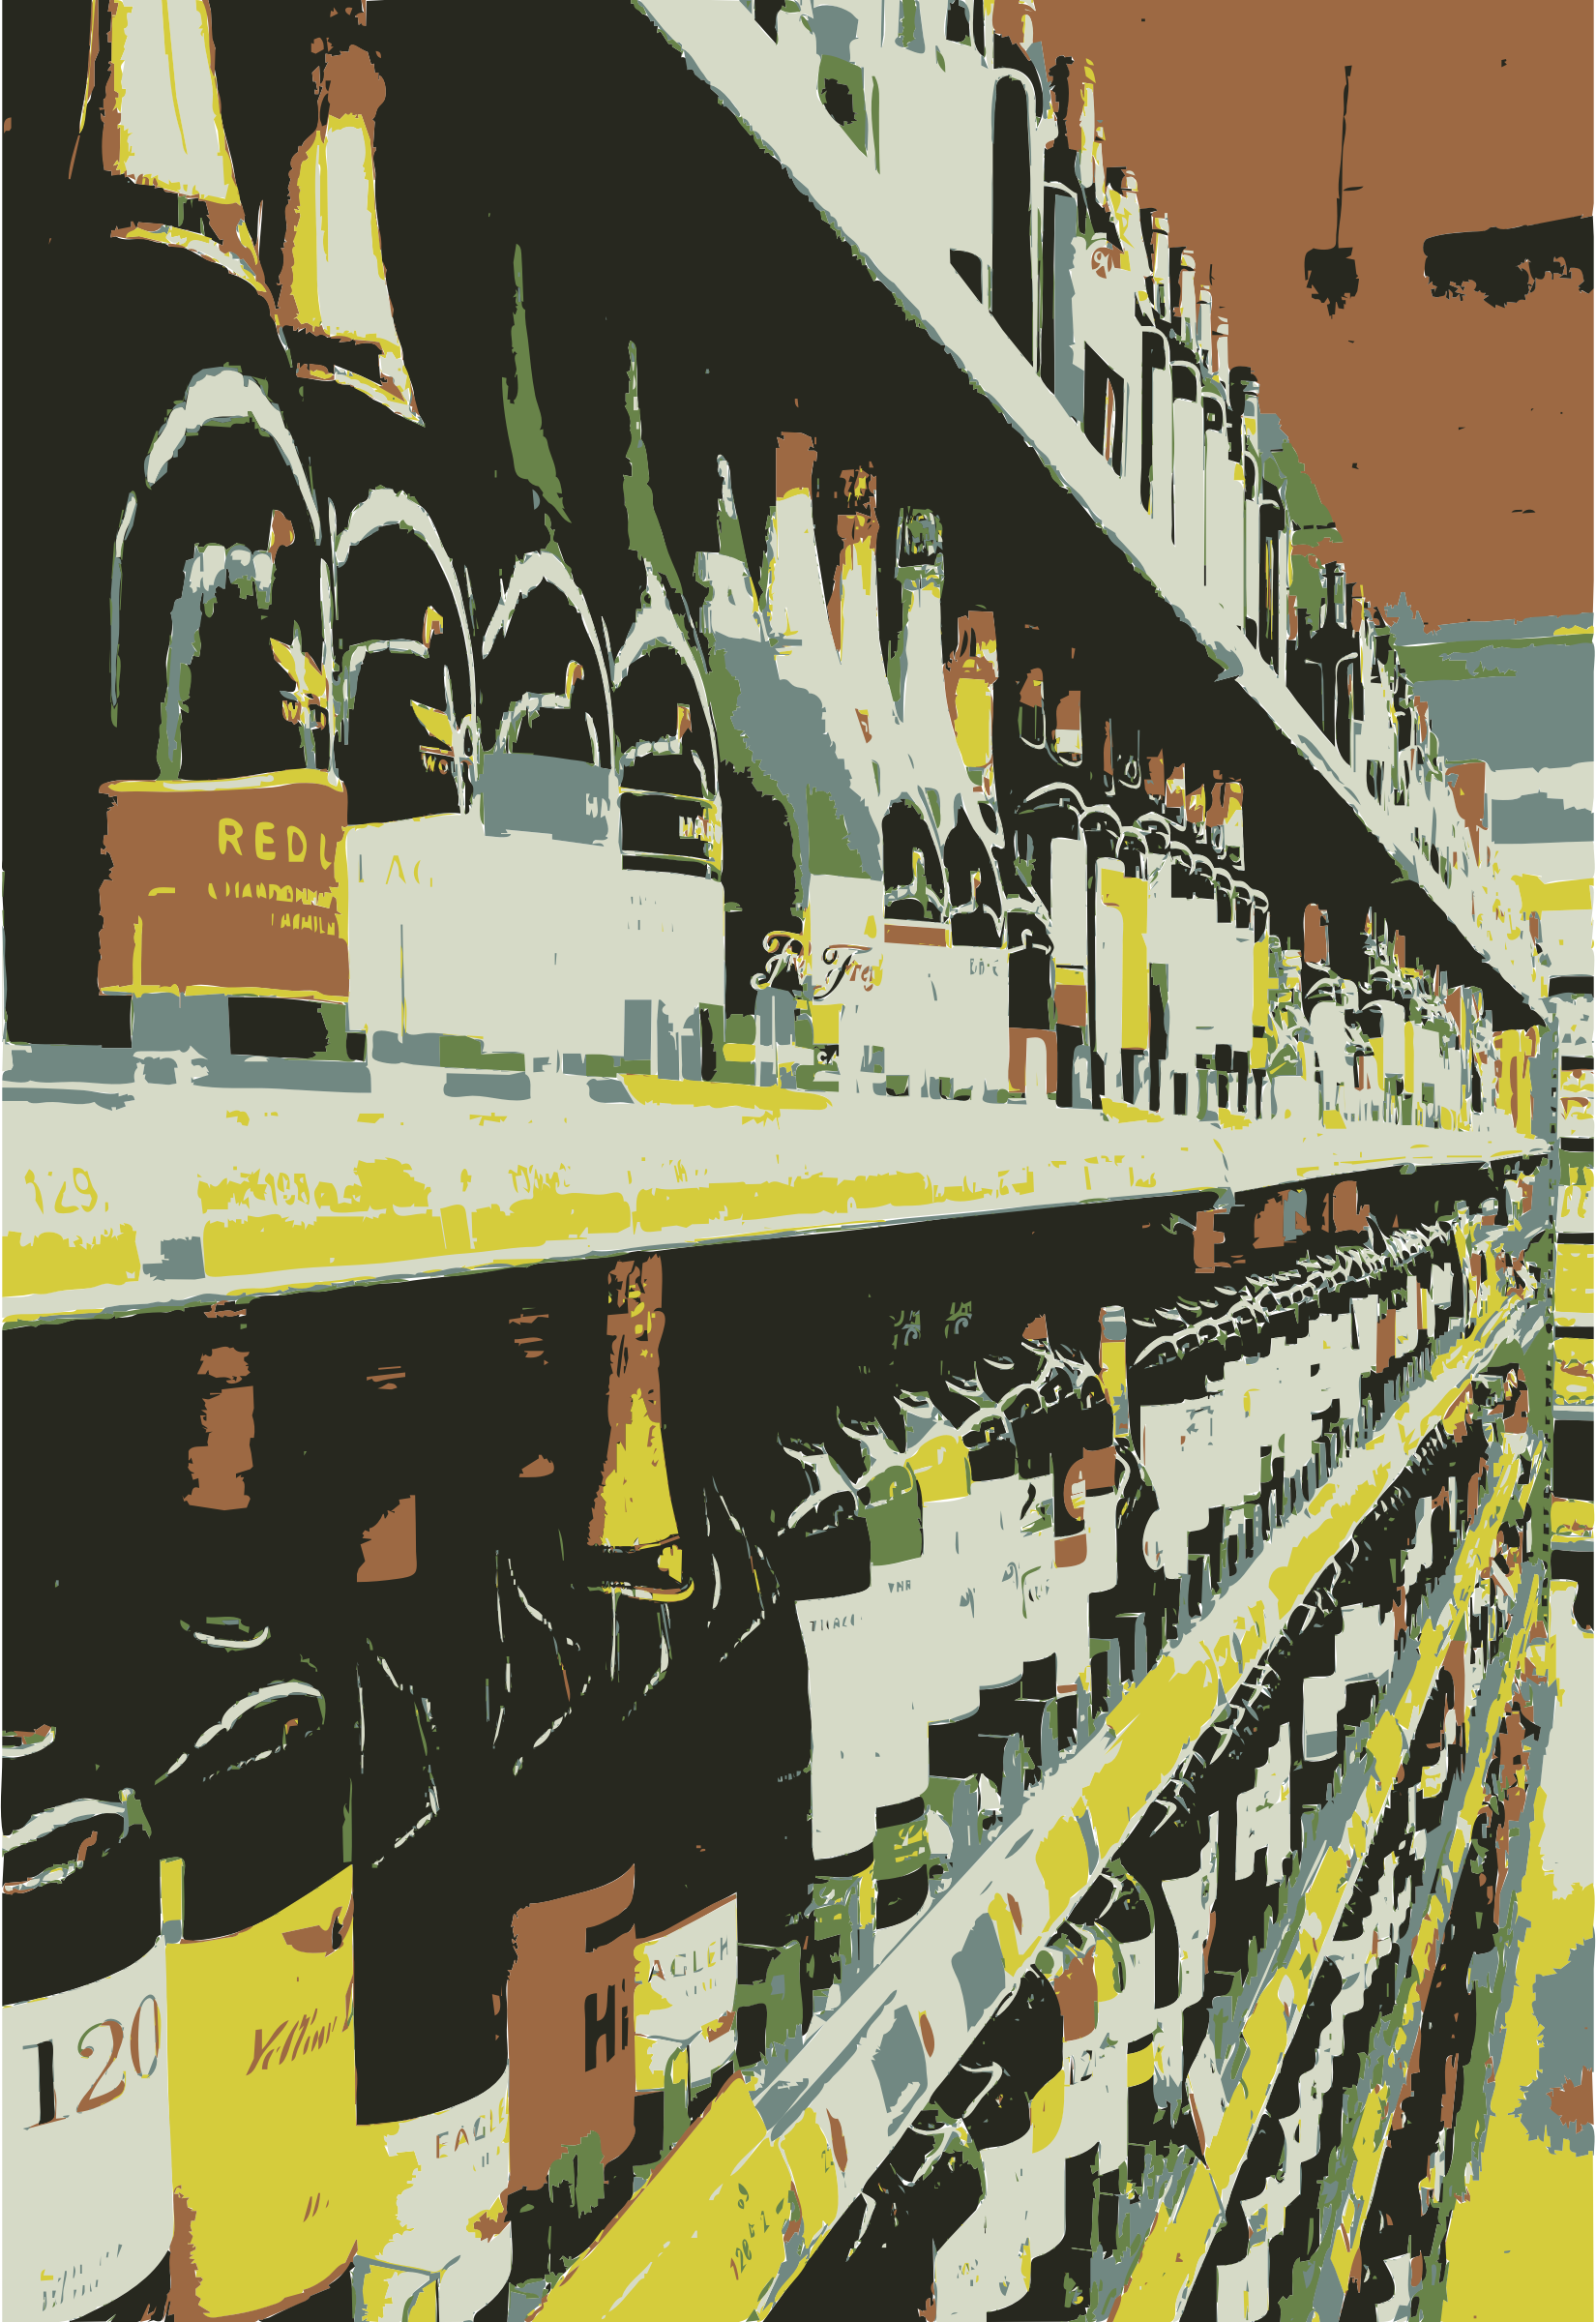 Wine selection on shelf by rejon